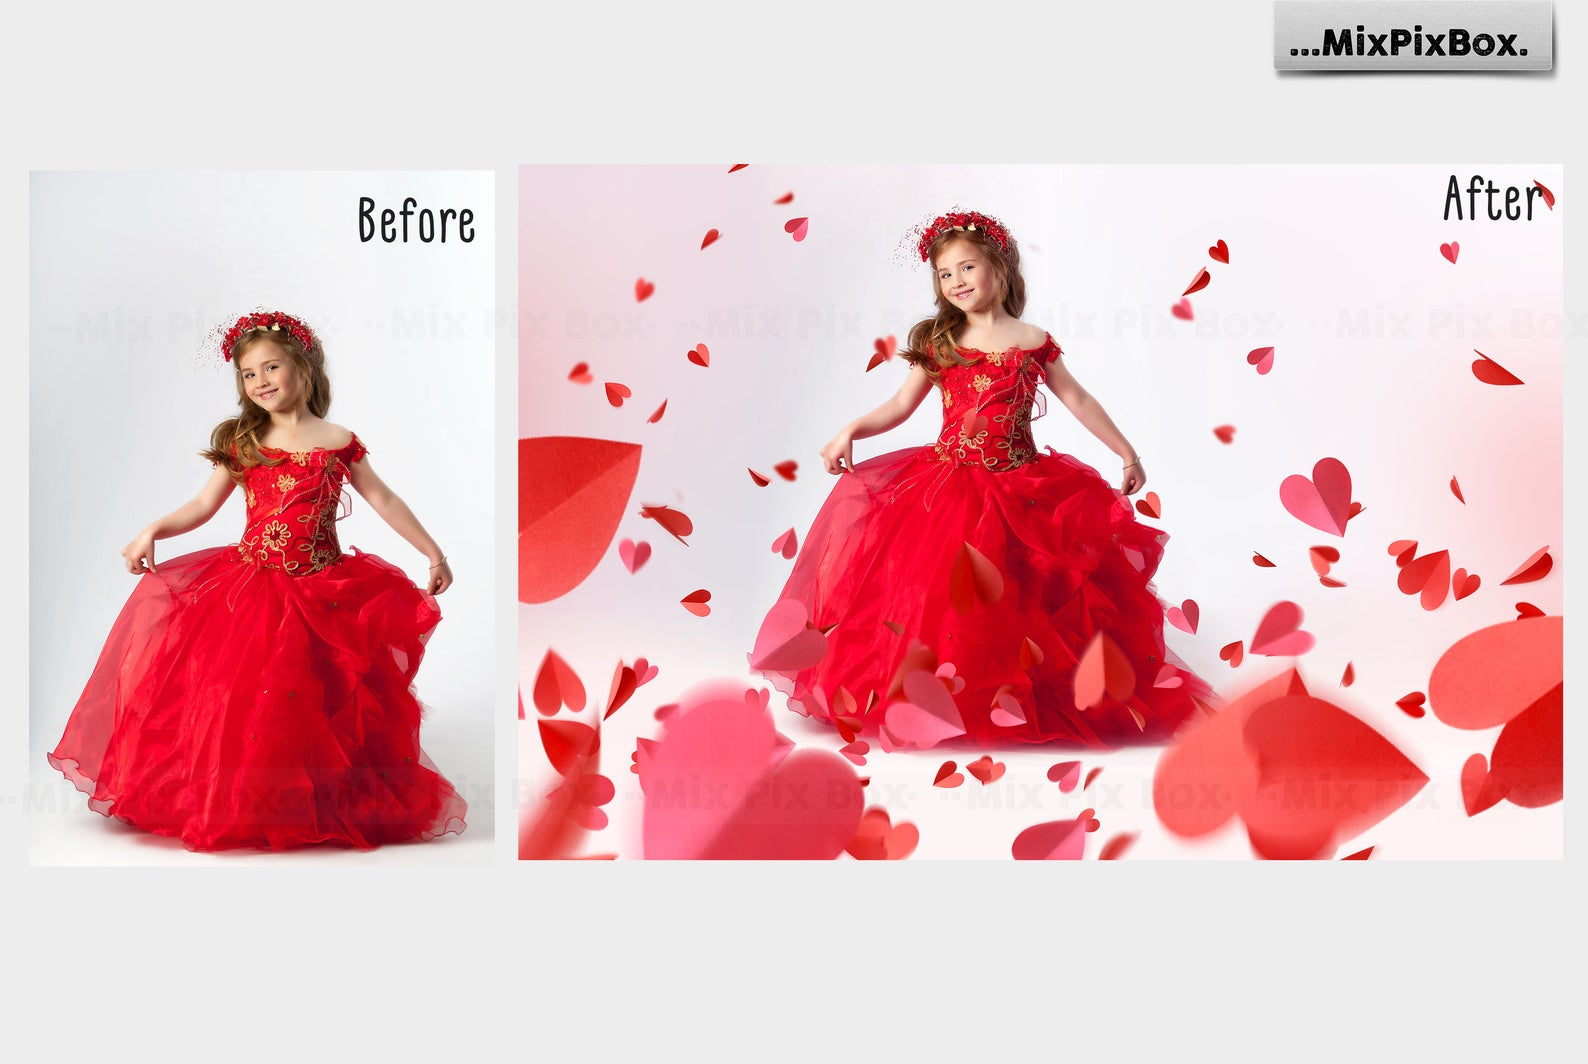 38 Heart Overlays: Red Paper Hearts Photoshop Add-ons - 3